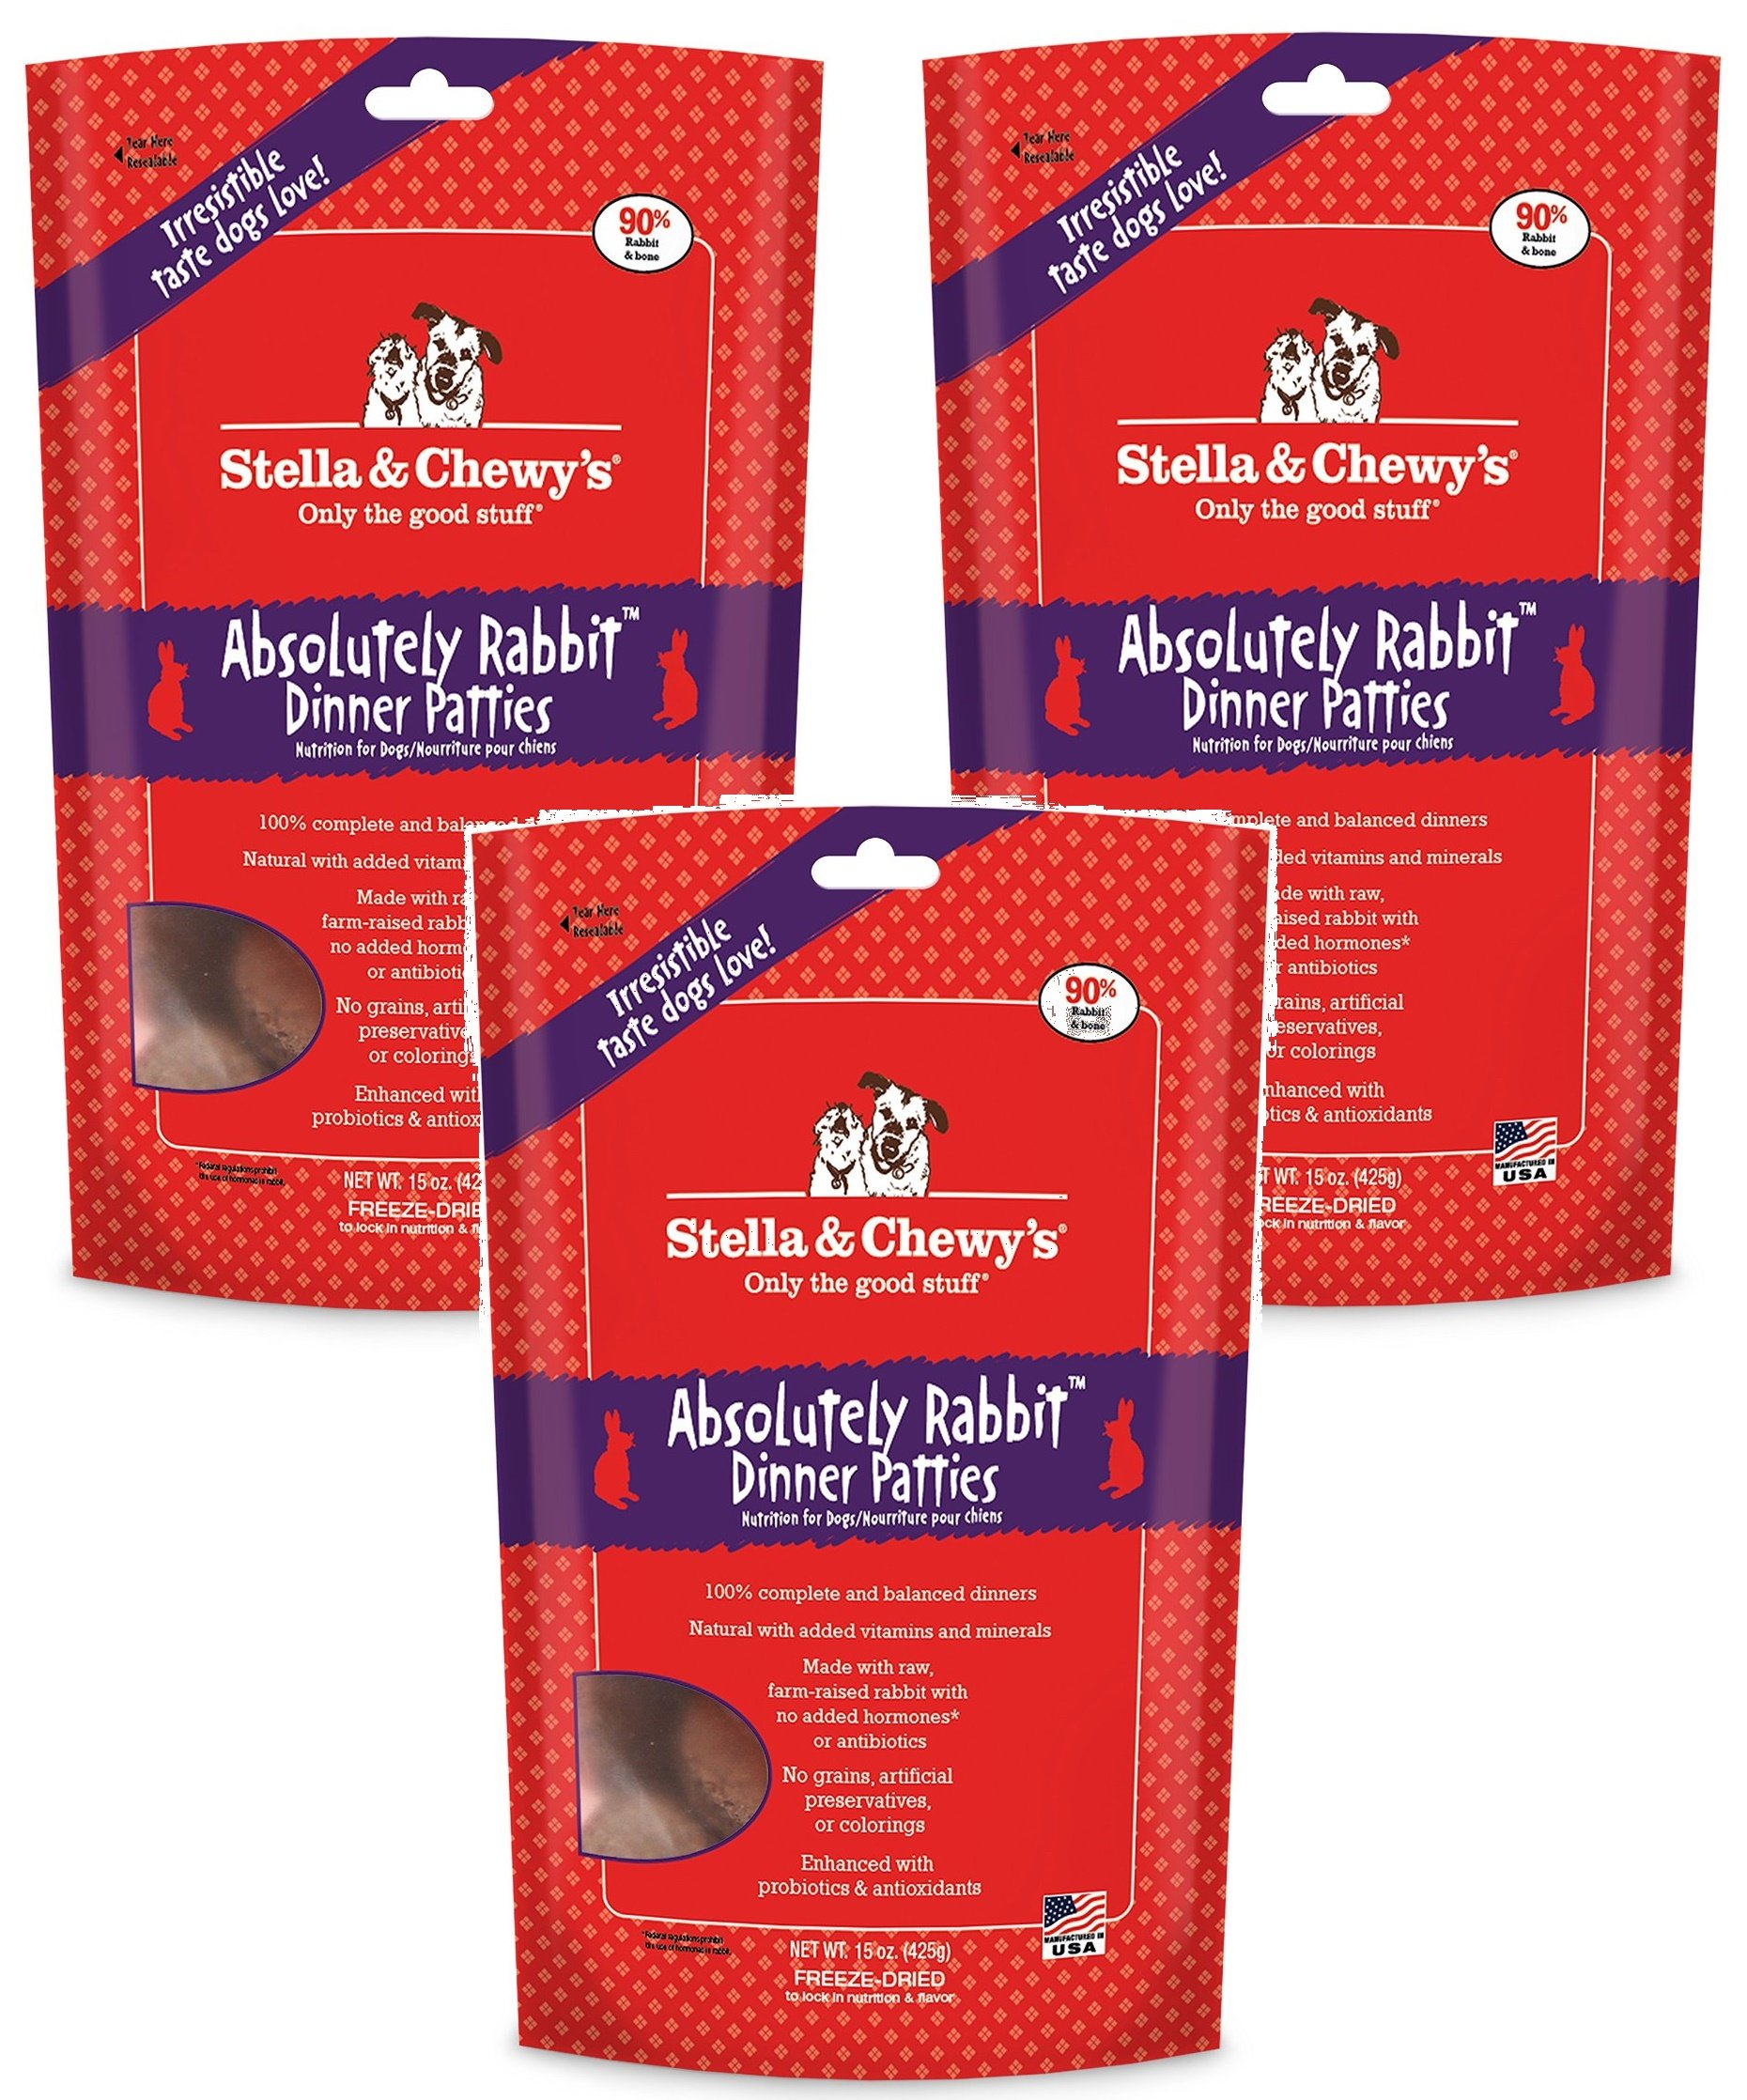 Stella & Chewy's Freeze Dried Dog Food for Adult Dogs, Rabbit, 15 Ounce Bag (3 Pack)